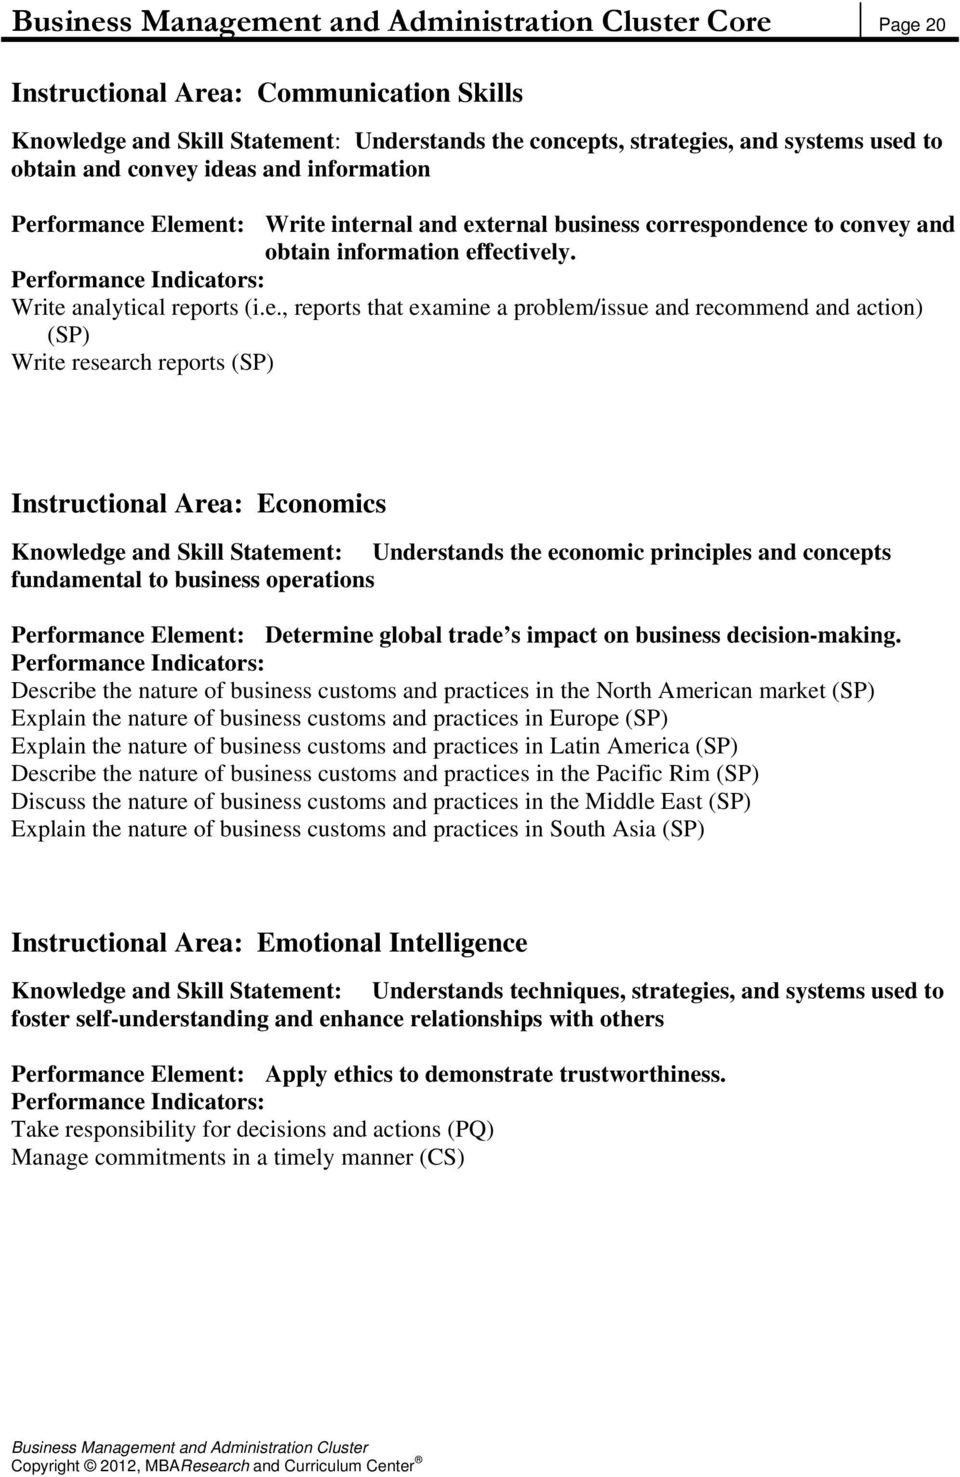 action) (SP) Write research reports (SP) Instructional Area: Economics Knowledge and Skill Statement: Understands the economic principles and concepts fundamental to business operations Performance